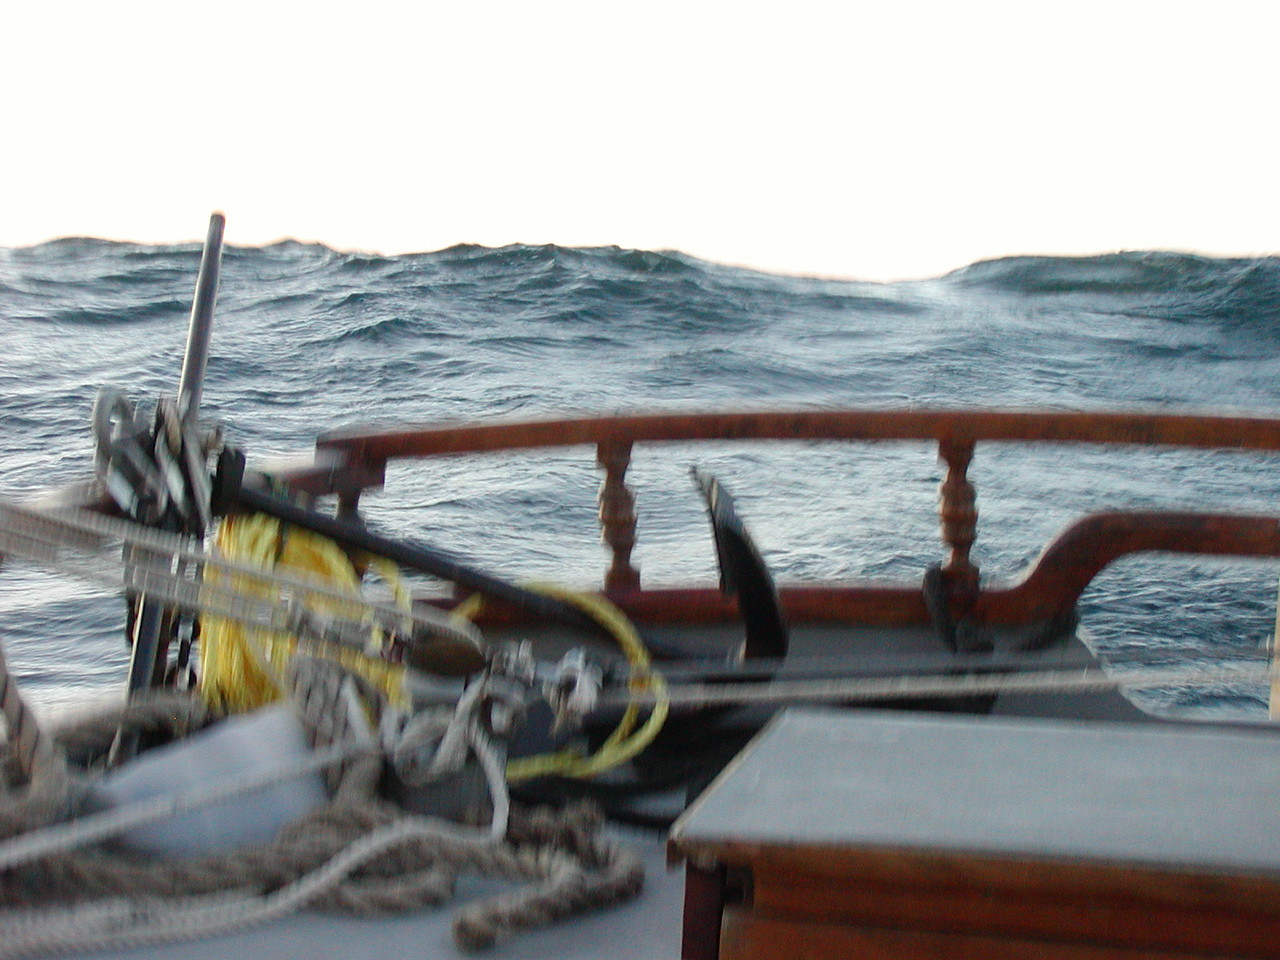 The helmsman at the tiller faces the bow. Although he cannot see them, he can hear the larger swells breaking on themselves as they approach behind us. If the boat drifts too far to the left or right relative to the waves, it can be rolled over. <br /> <br /> The swells in this picture are about eye height. We observed that the heaviest swells seemed to come in sets of three. A few of the very largest swells coming after dark and in the moonlight appeared to be 16 to 18 feet high from the crest of the wave to the trough. <br /> <br /> By 11:00 the wind had not let up and it was clear we needed to find shelter.  The relentless swells required constant vigilence from the helmsman. The nearest port was twenty miles away, which meant another three hours of sailing into the moonbeams. At 12:30 I told Lynn I had only a 90 minute supply of adrenalin left in me.